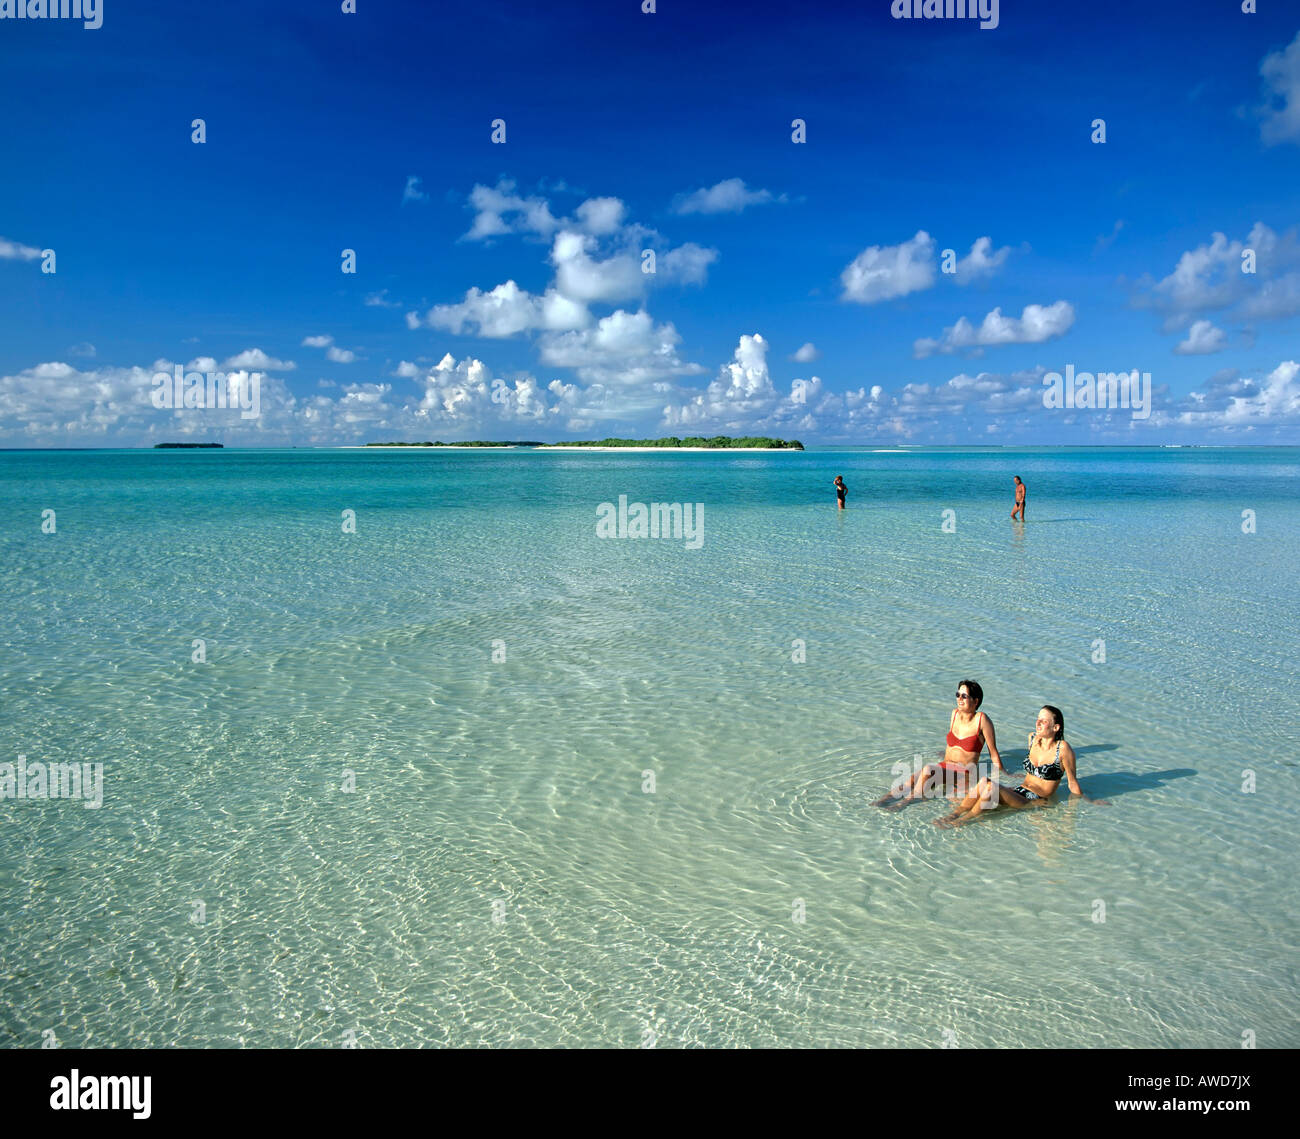 Young women relaxing in shallow water, island at the back, Maldives, Indian Ocean Stock Photo